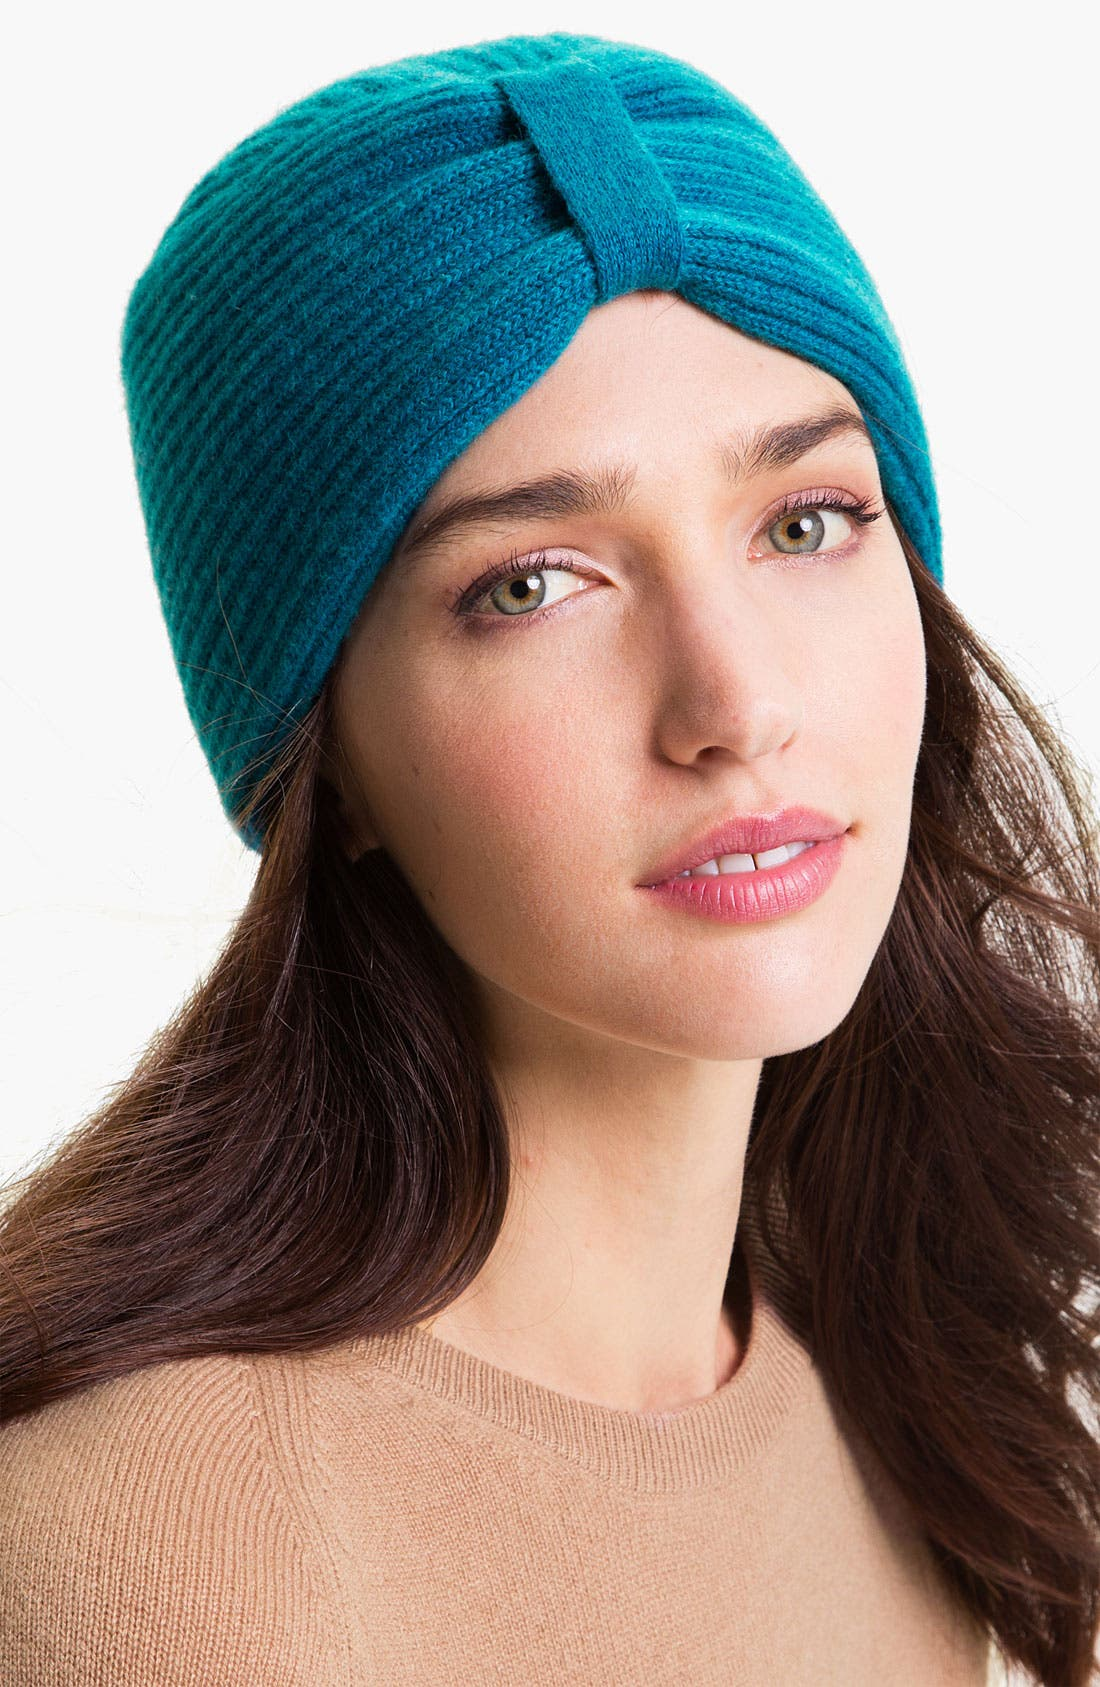 Alternate Image 1 Selected - Laundry by Shelli Segal Wool Turban